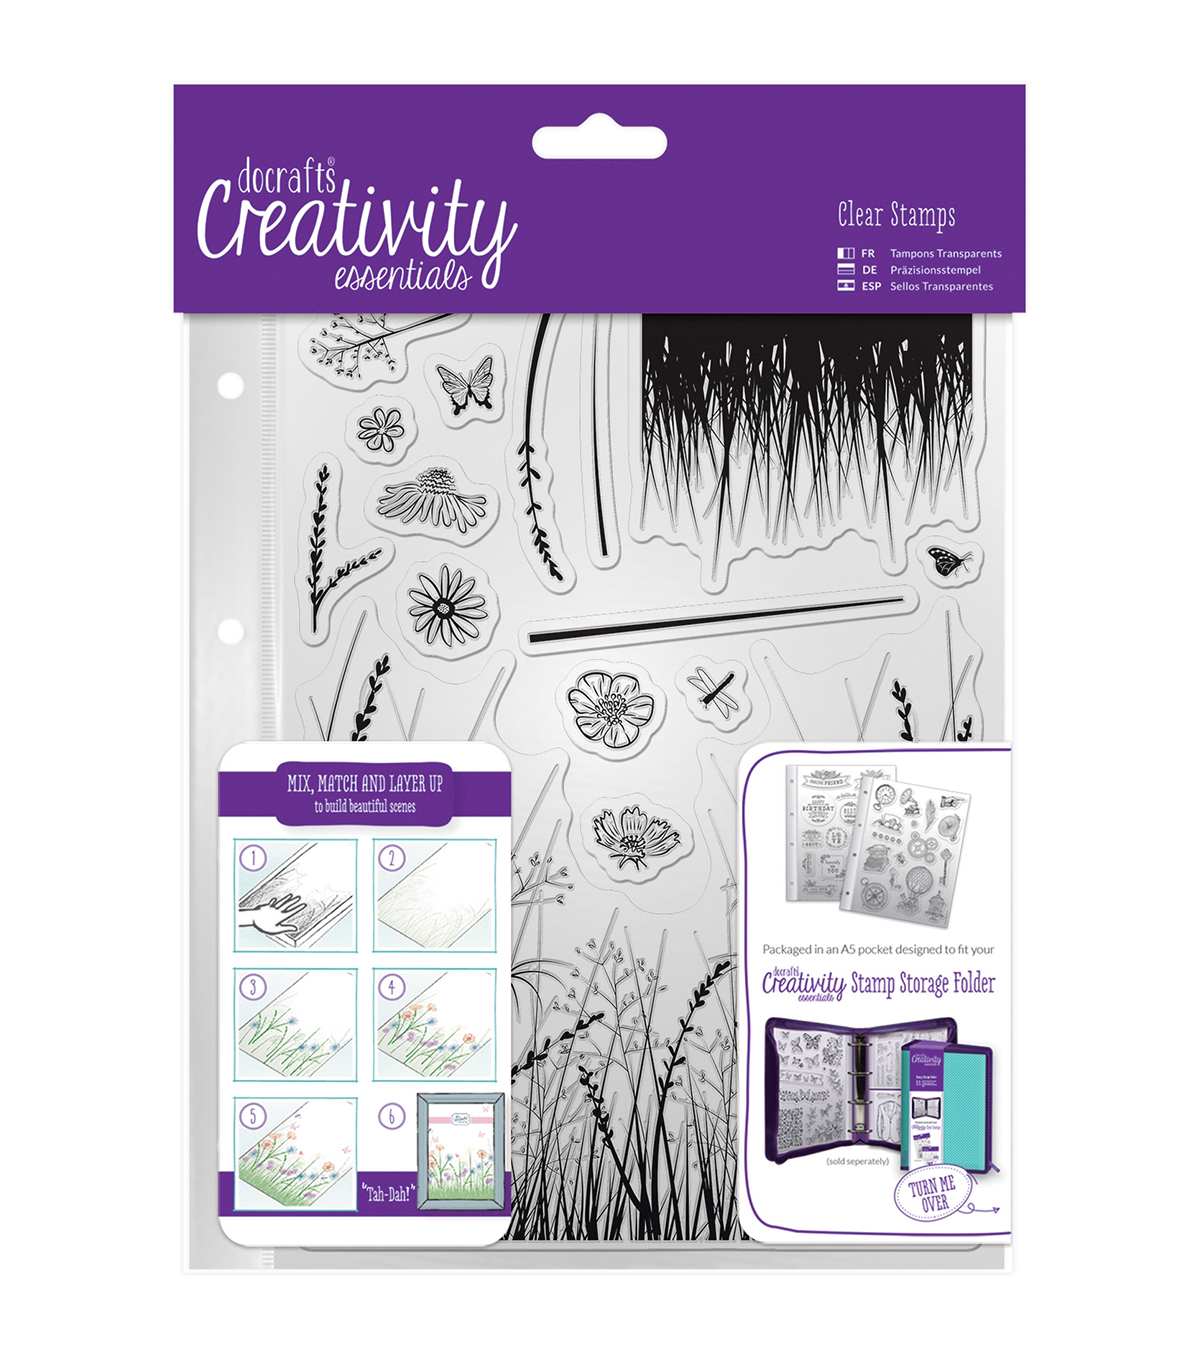 Docrafts Creativity Essentials A5 Clear Stamp Set-Meadow